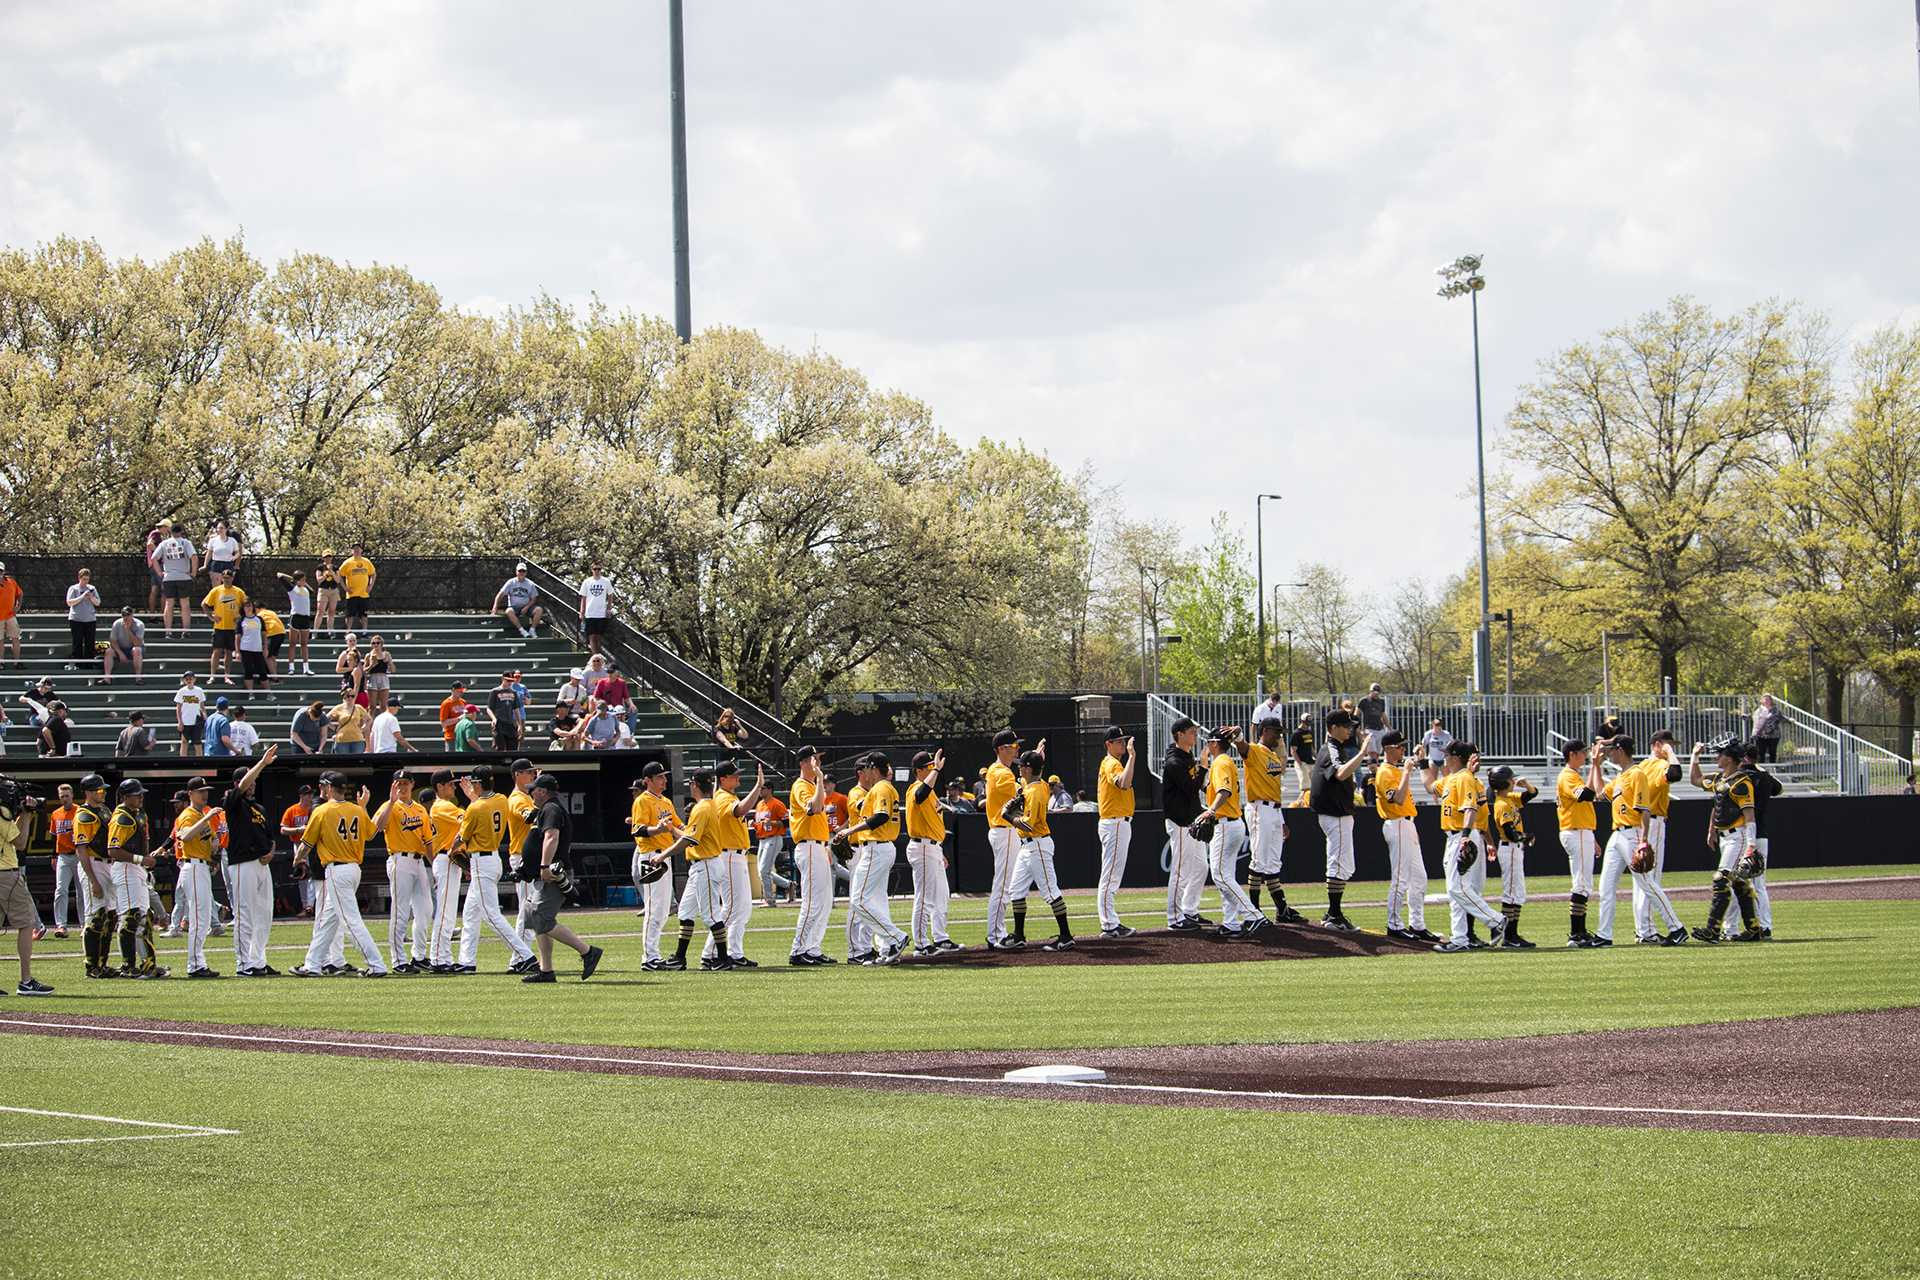 Iowa players congratulate each other on the win during baseball Iowa vs. Oklahoma State at Duane Banks Field on May 6, 2018. The Hawkeyes defeated the Cowboys 11-3.  (Katina Zentz/The Daily Iowan)